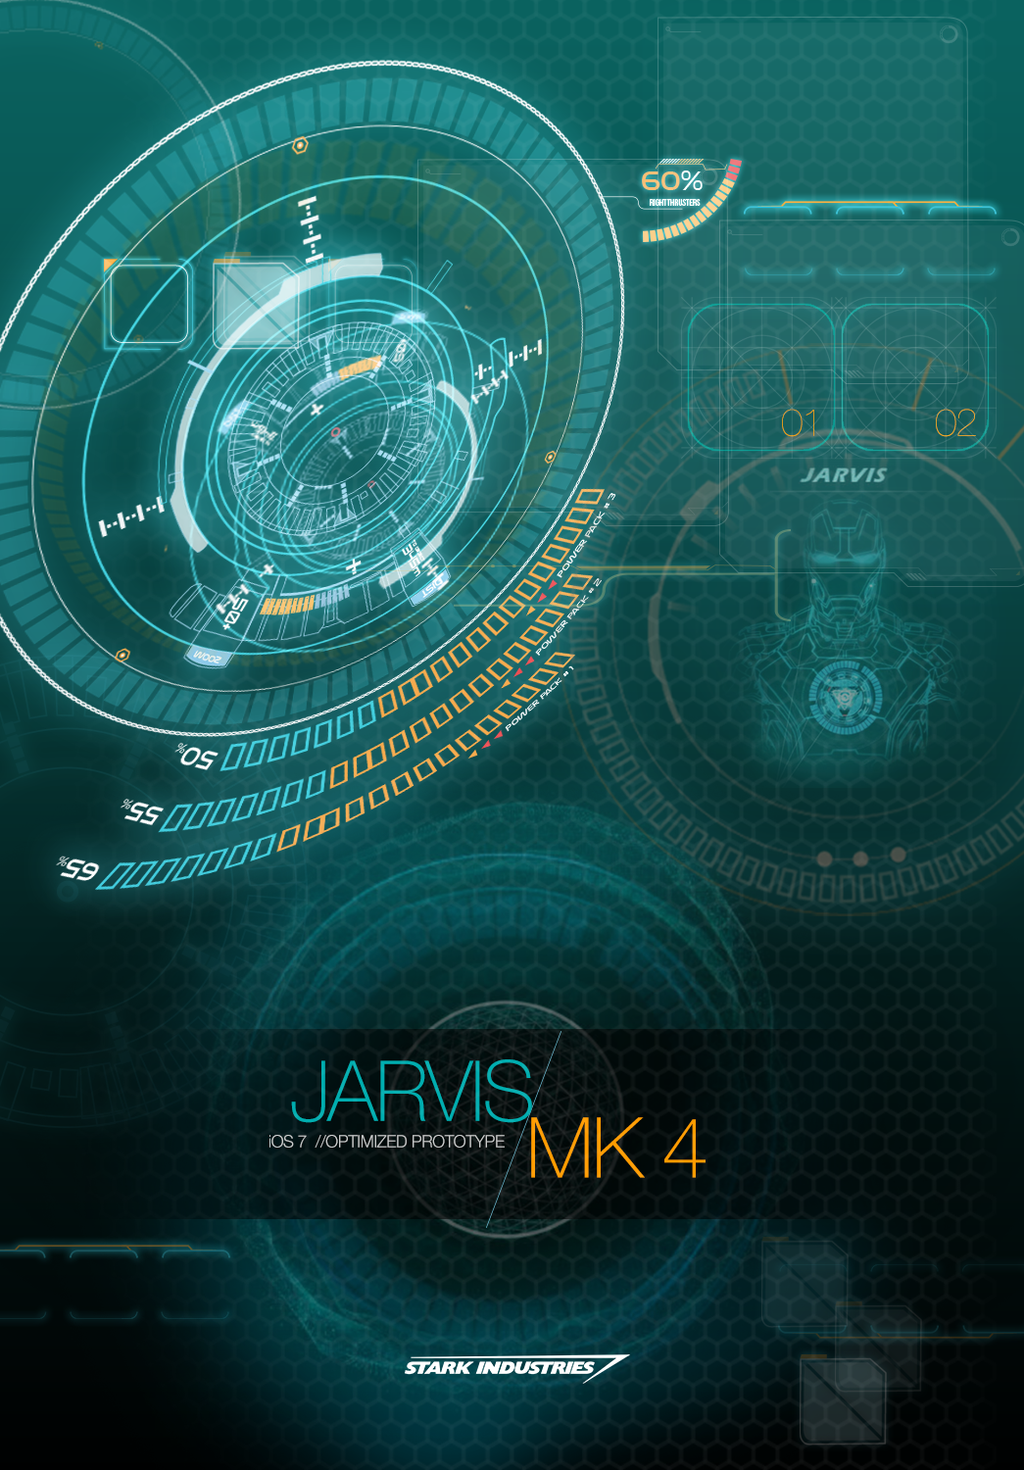 Iron Man Jarvis Live Wallpaper - WallpaperSafari